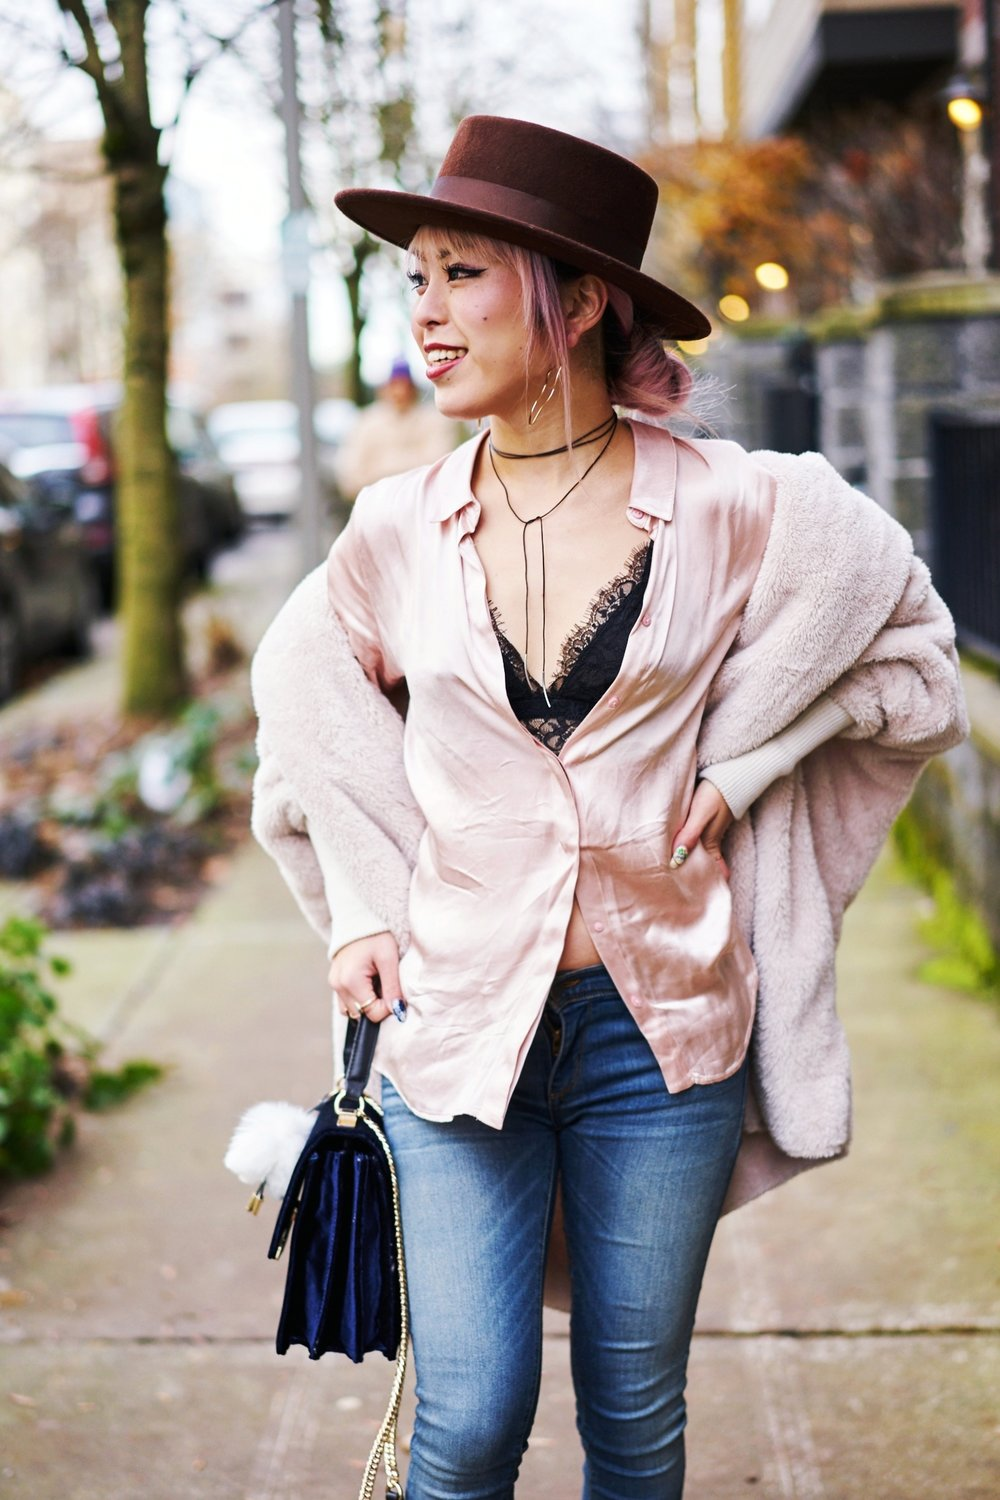 Zara blush satin shirt-Forever 21 Lace Bralette-No Weekends wrap chocker-She In Apricot Hooded Long Sleeve Loose Cardigan-Acne Studios Canada wool Scarf black-zara velvet crossbody bag-hudson jeans skinny jeans-lack of color the coco boater-Justfab KAIYA booties-Aika's love closet-Seattle fashion style blogger-japanese-pink hair 2